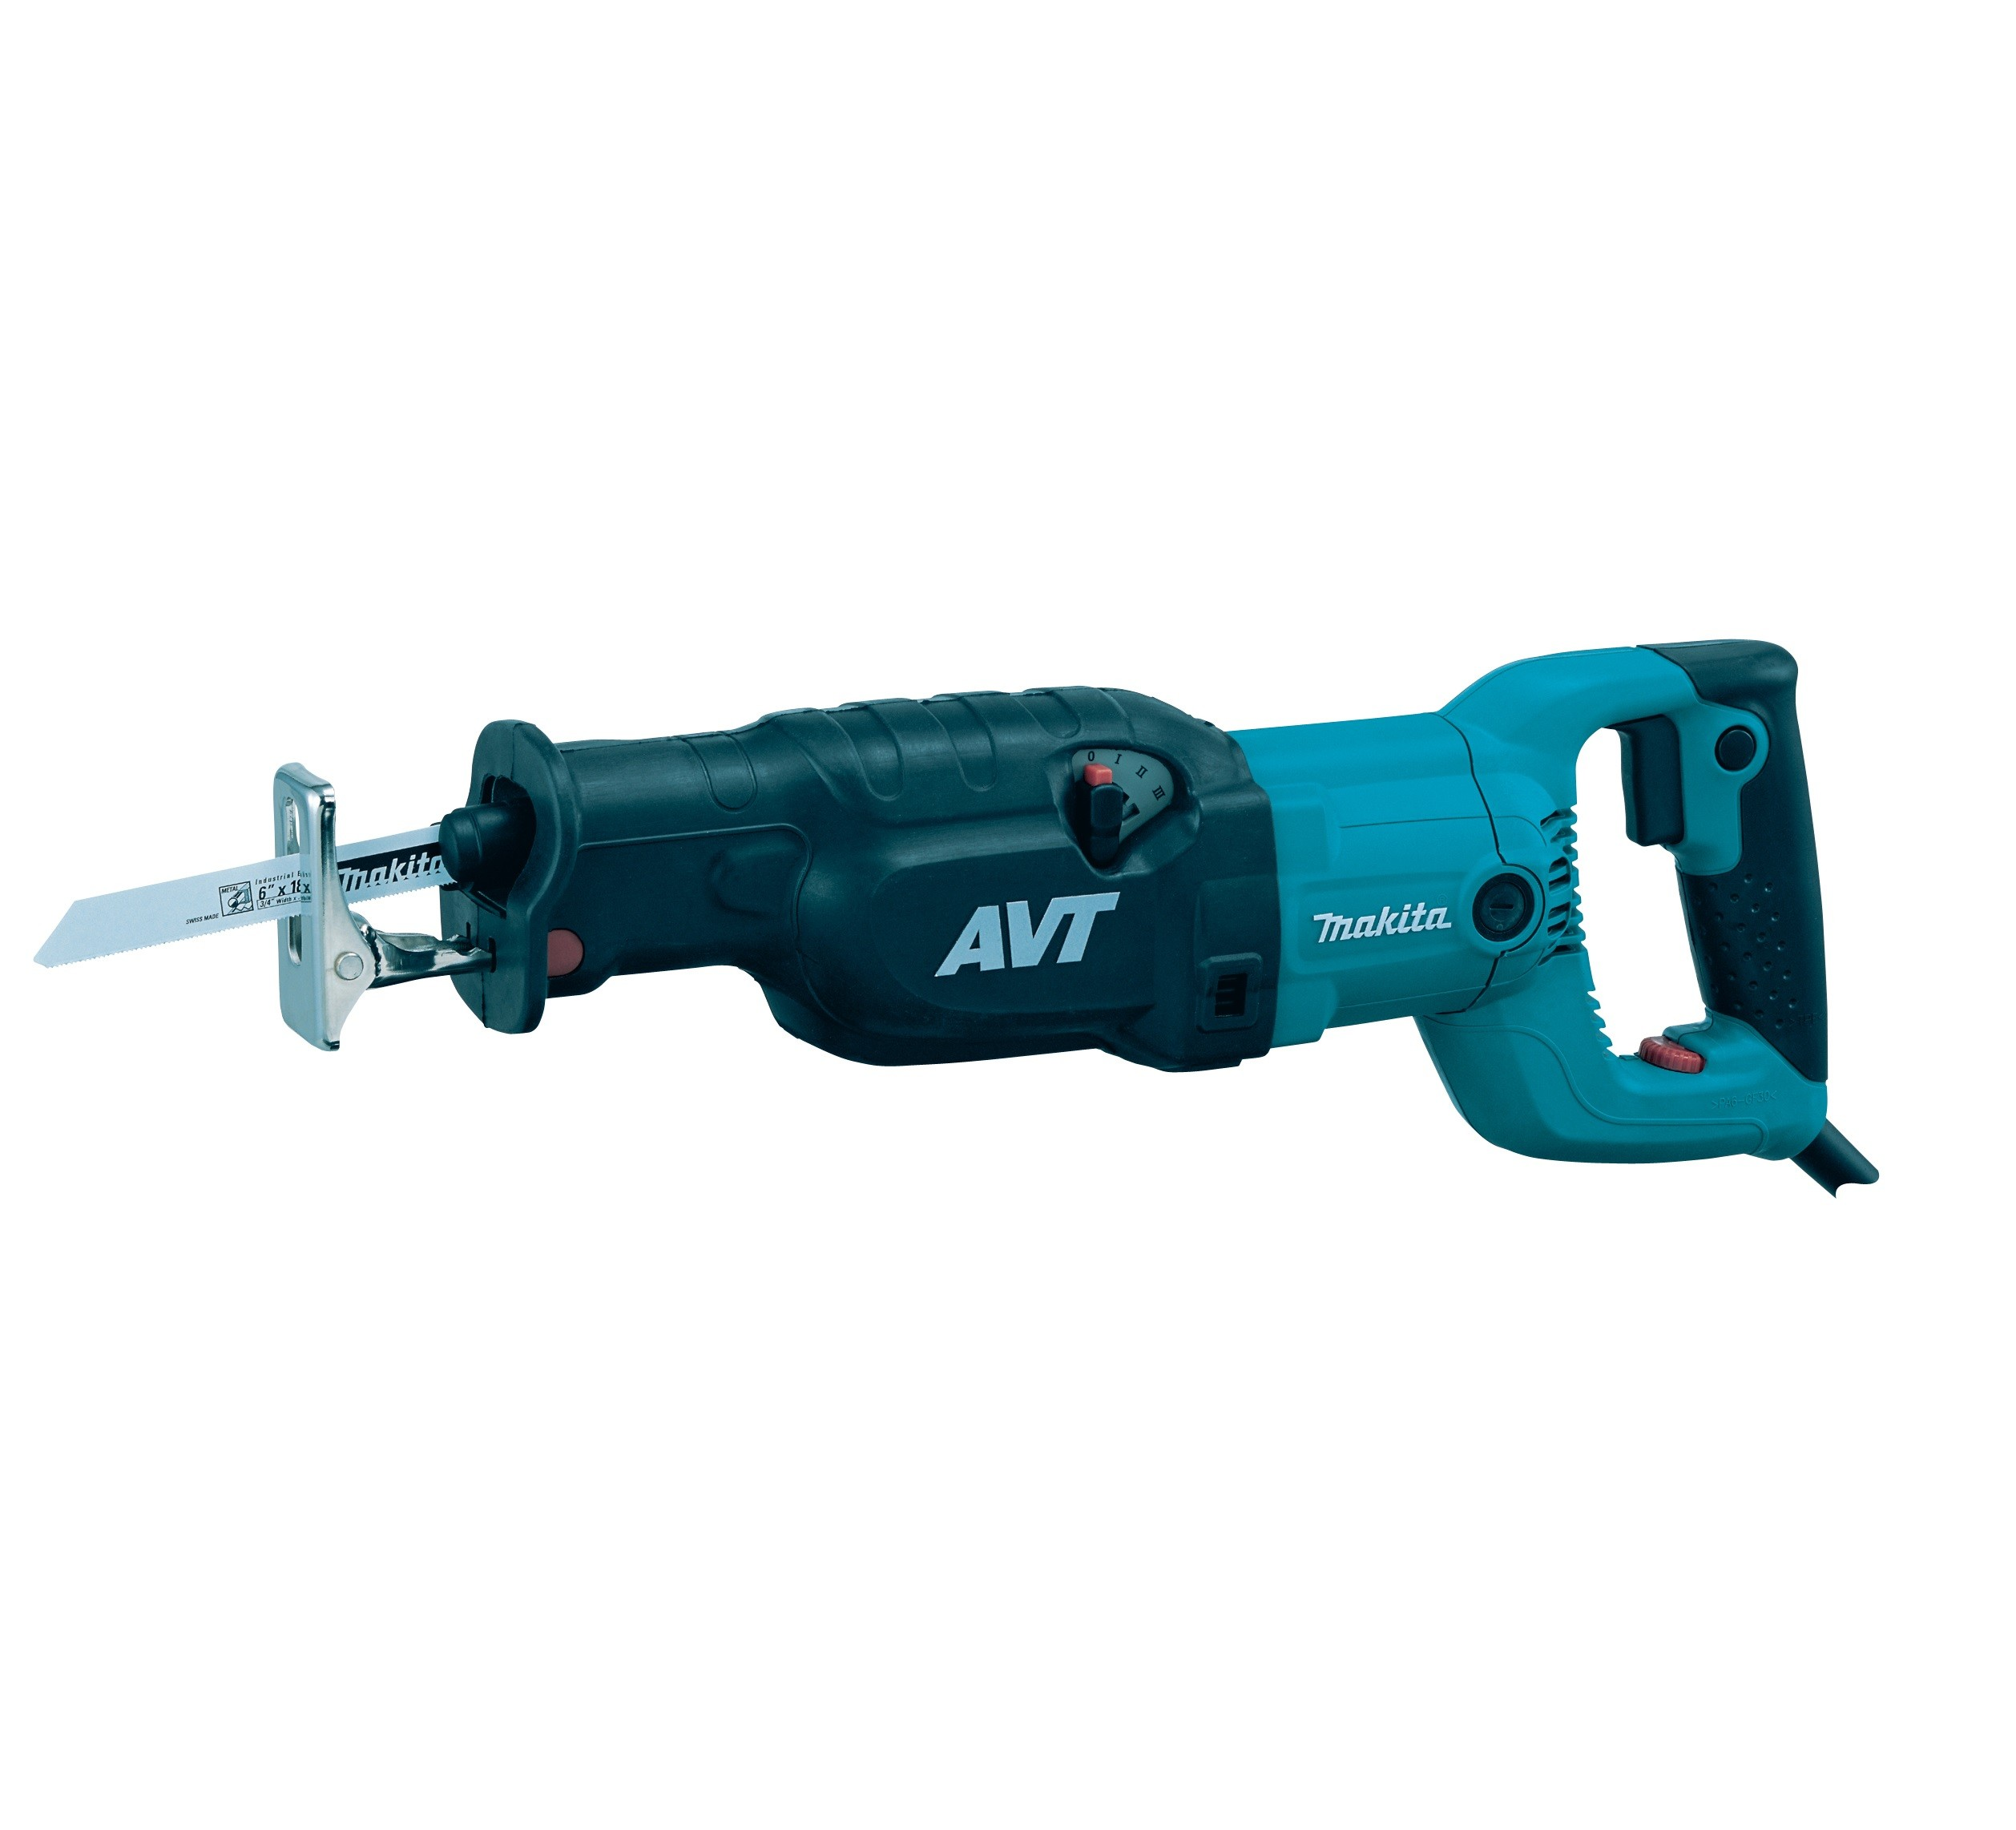 Makita JR3070CT Orbital Action Reciprocating Saw 240v